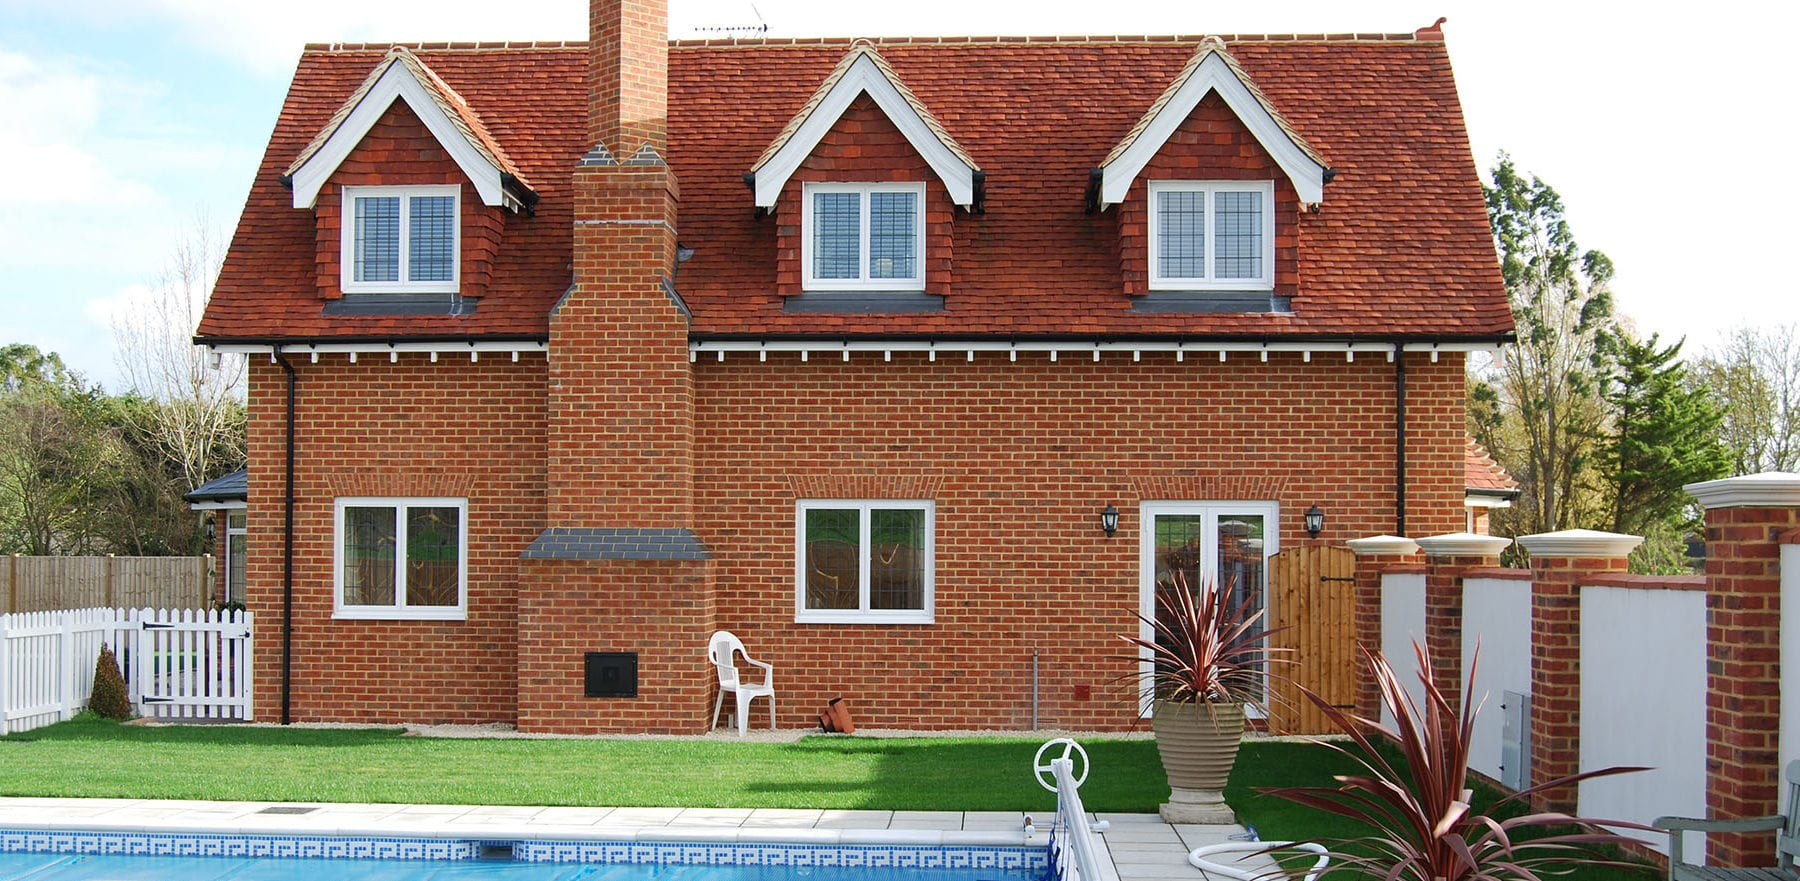 Lifestiles - Handmade Red Clay Roof Tiles - Rudley, England 3